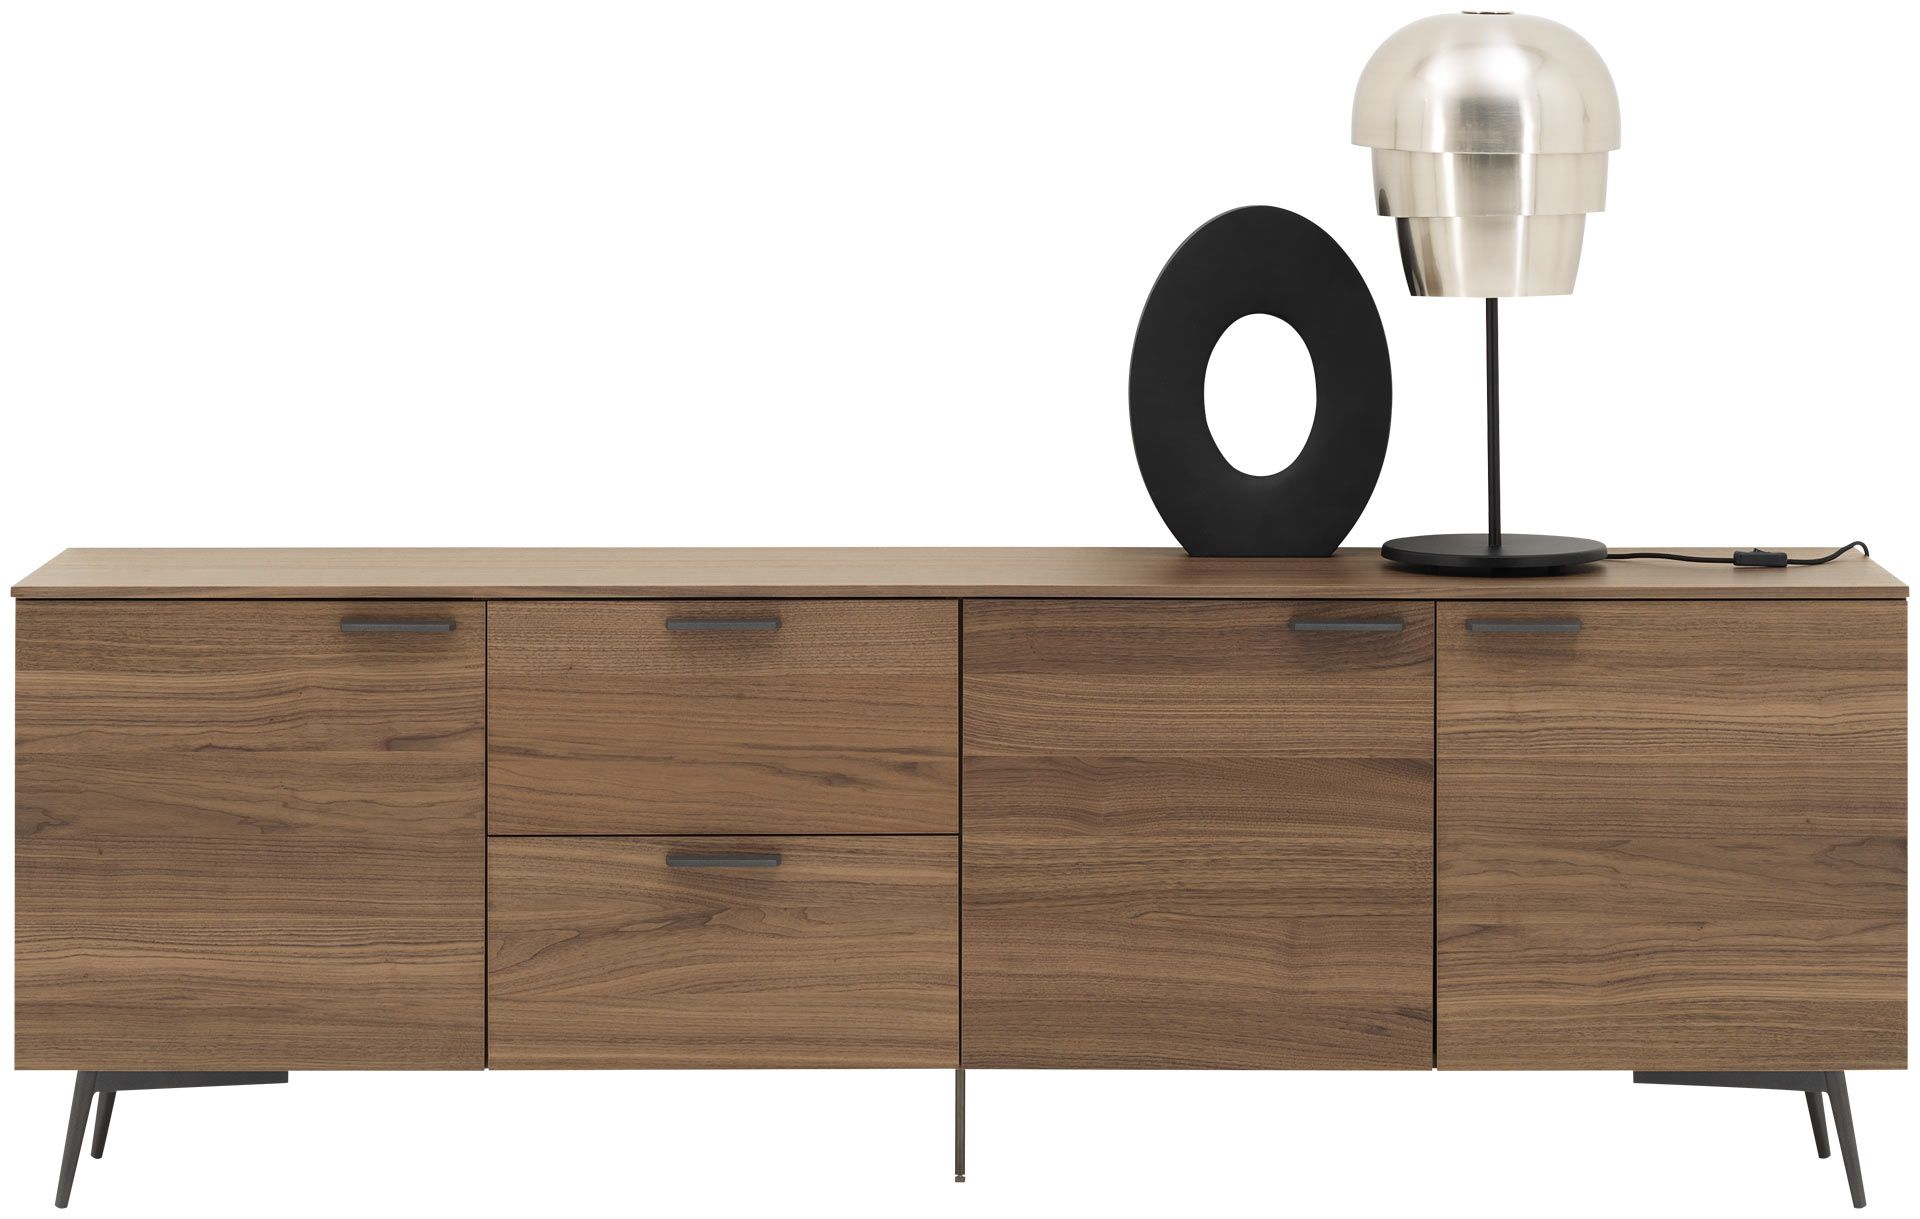 Bezaubernd Sideboard Modern Dekoration Von Sideboards - Contemporary Sideboards - Boconcept